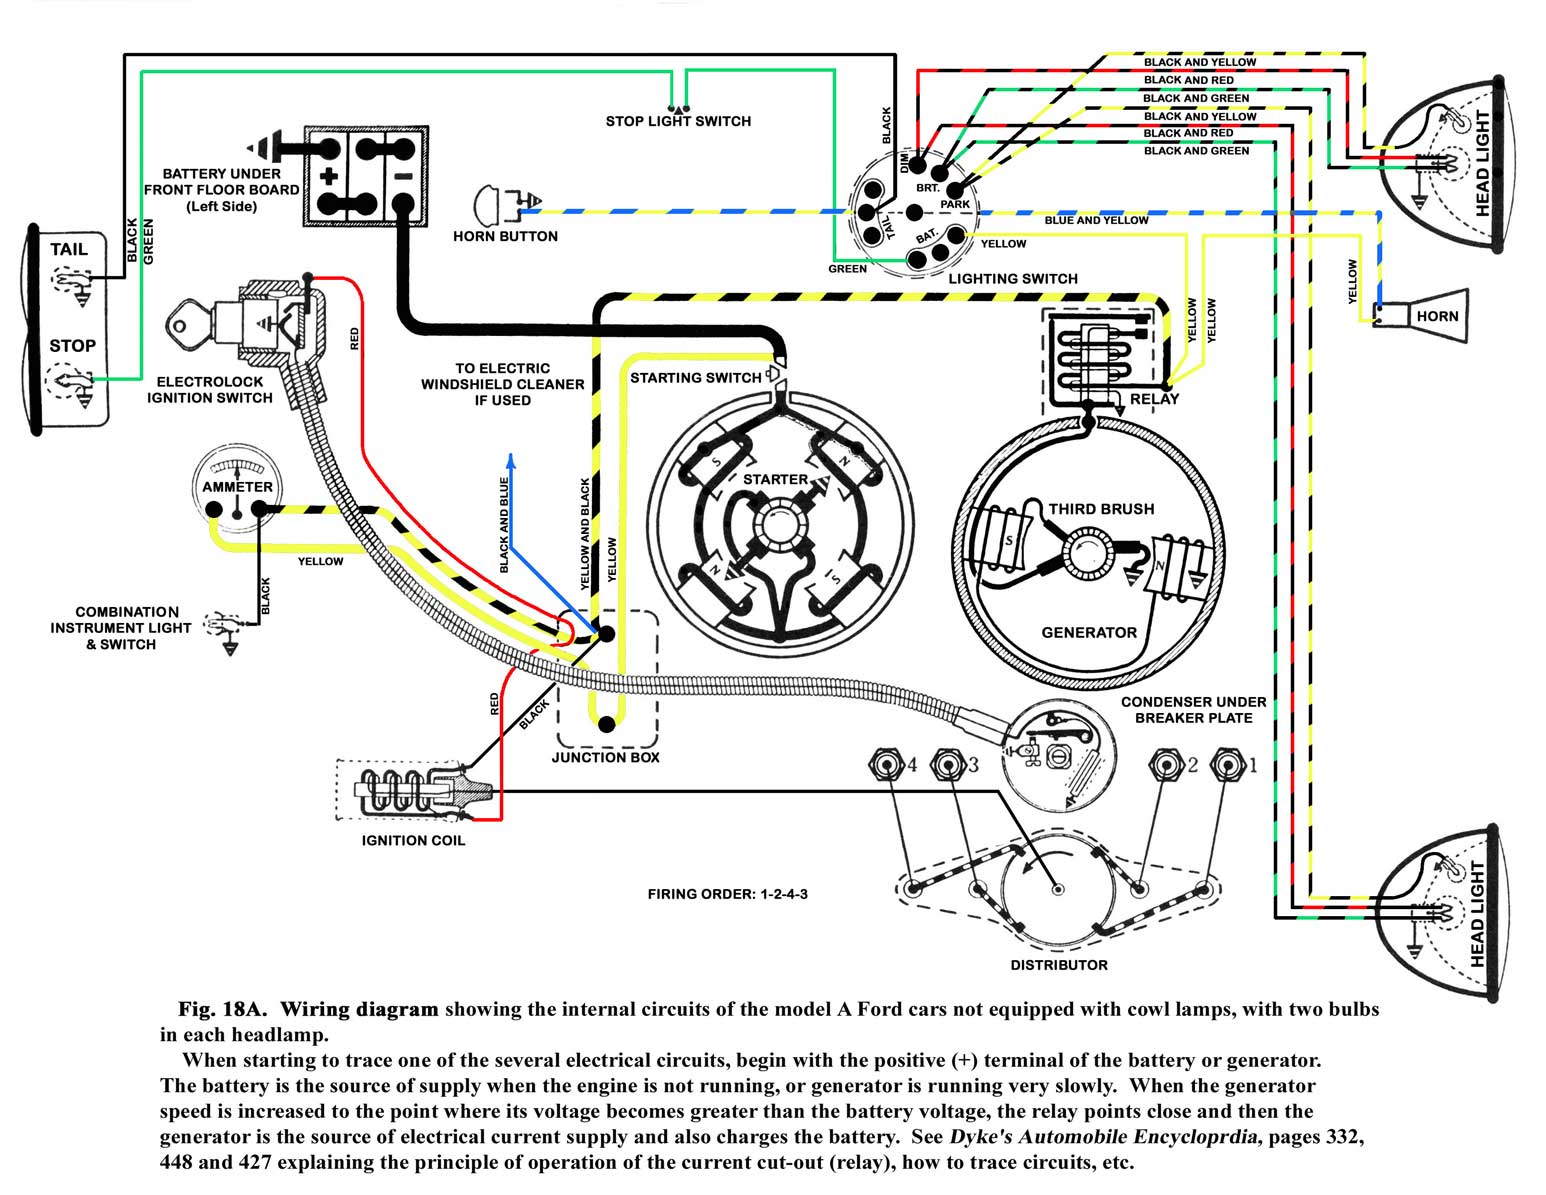 Model A Wiring Diagram Electronic Diagrams John Deere Capitol As With 6 Volt Alternator